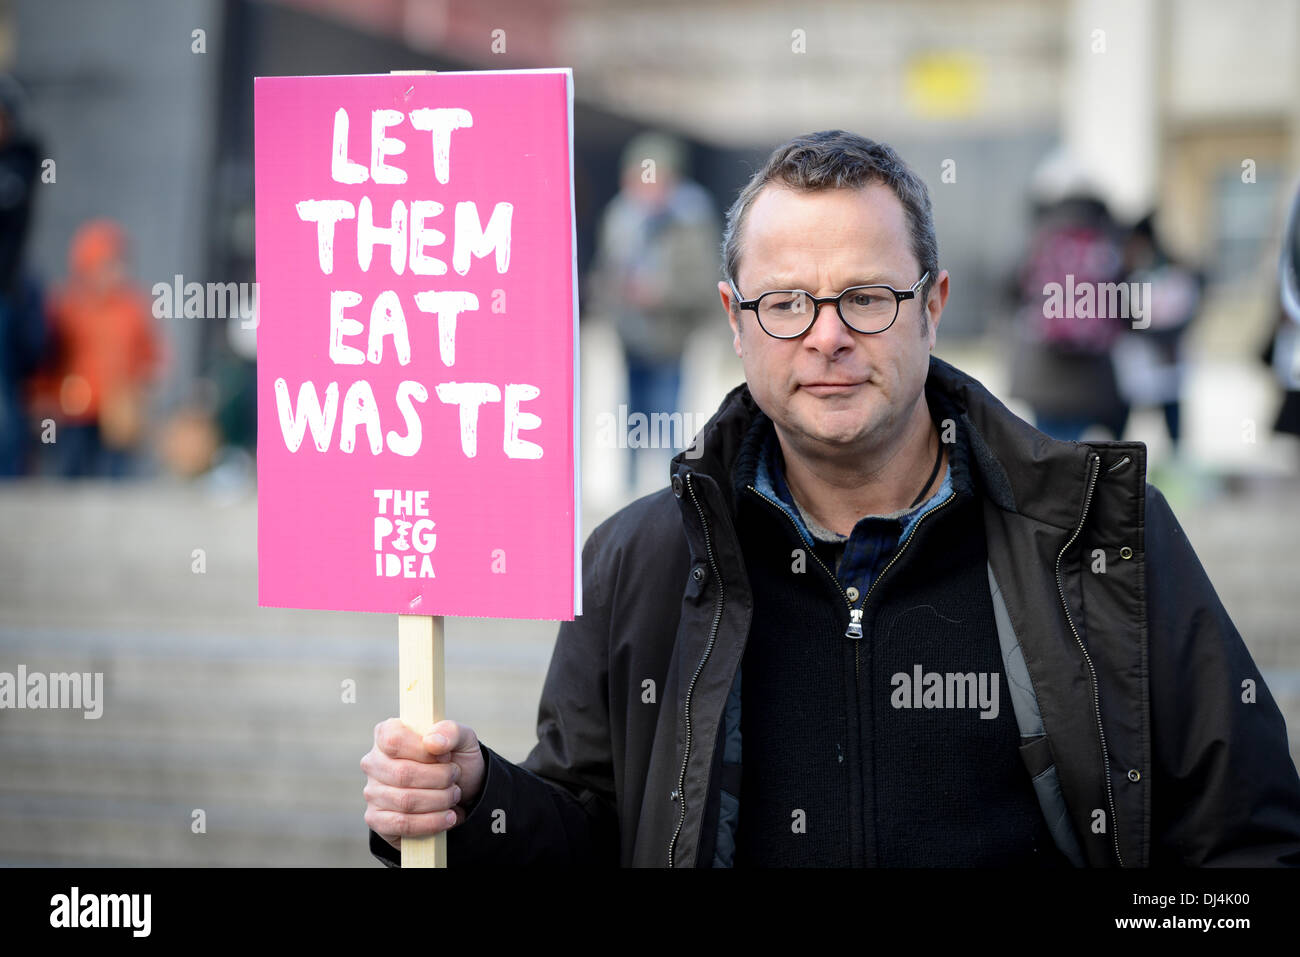 Hugh Fearnley- Whittingstall with a sign ' Let them eat waste' at The Pig Idea feast in Trafalgar SquareThe Pig Idea feast in Trafalgar Square - Stock Image